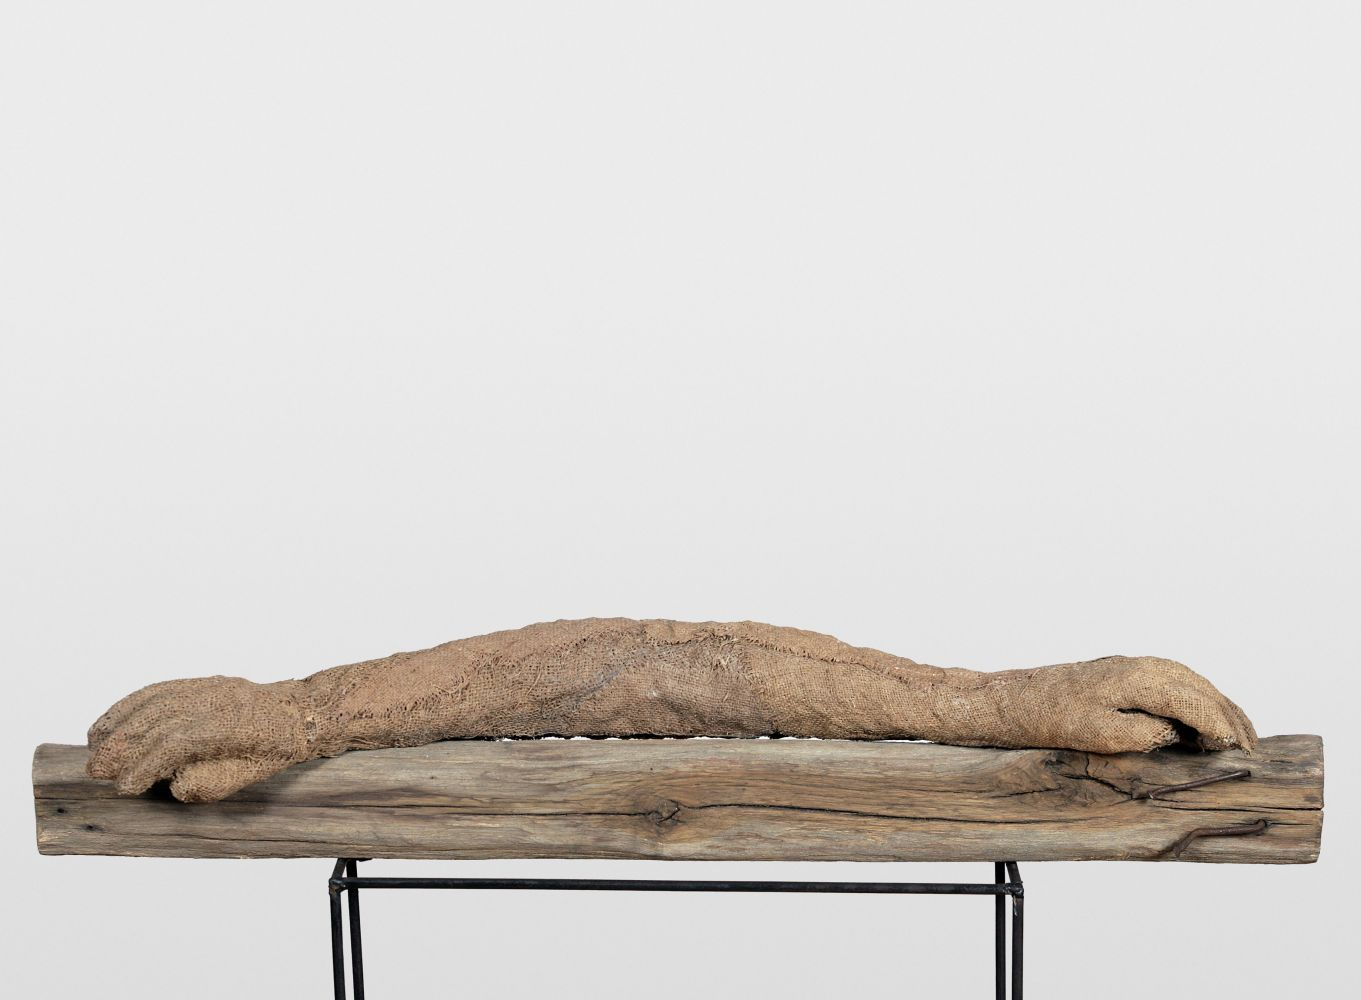 Horizontal burlap, wood and steel sculpture by Magdalena Abakanowicz of two arms joined at the elbow